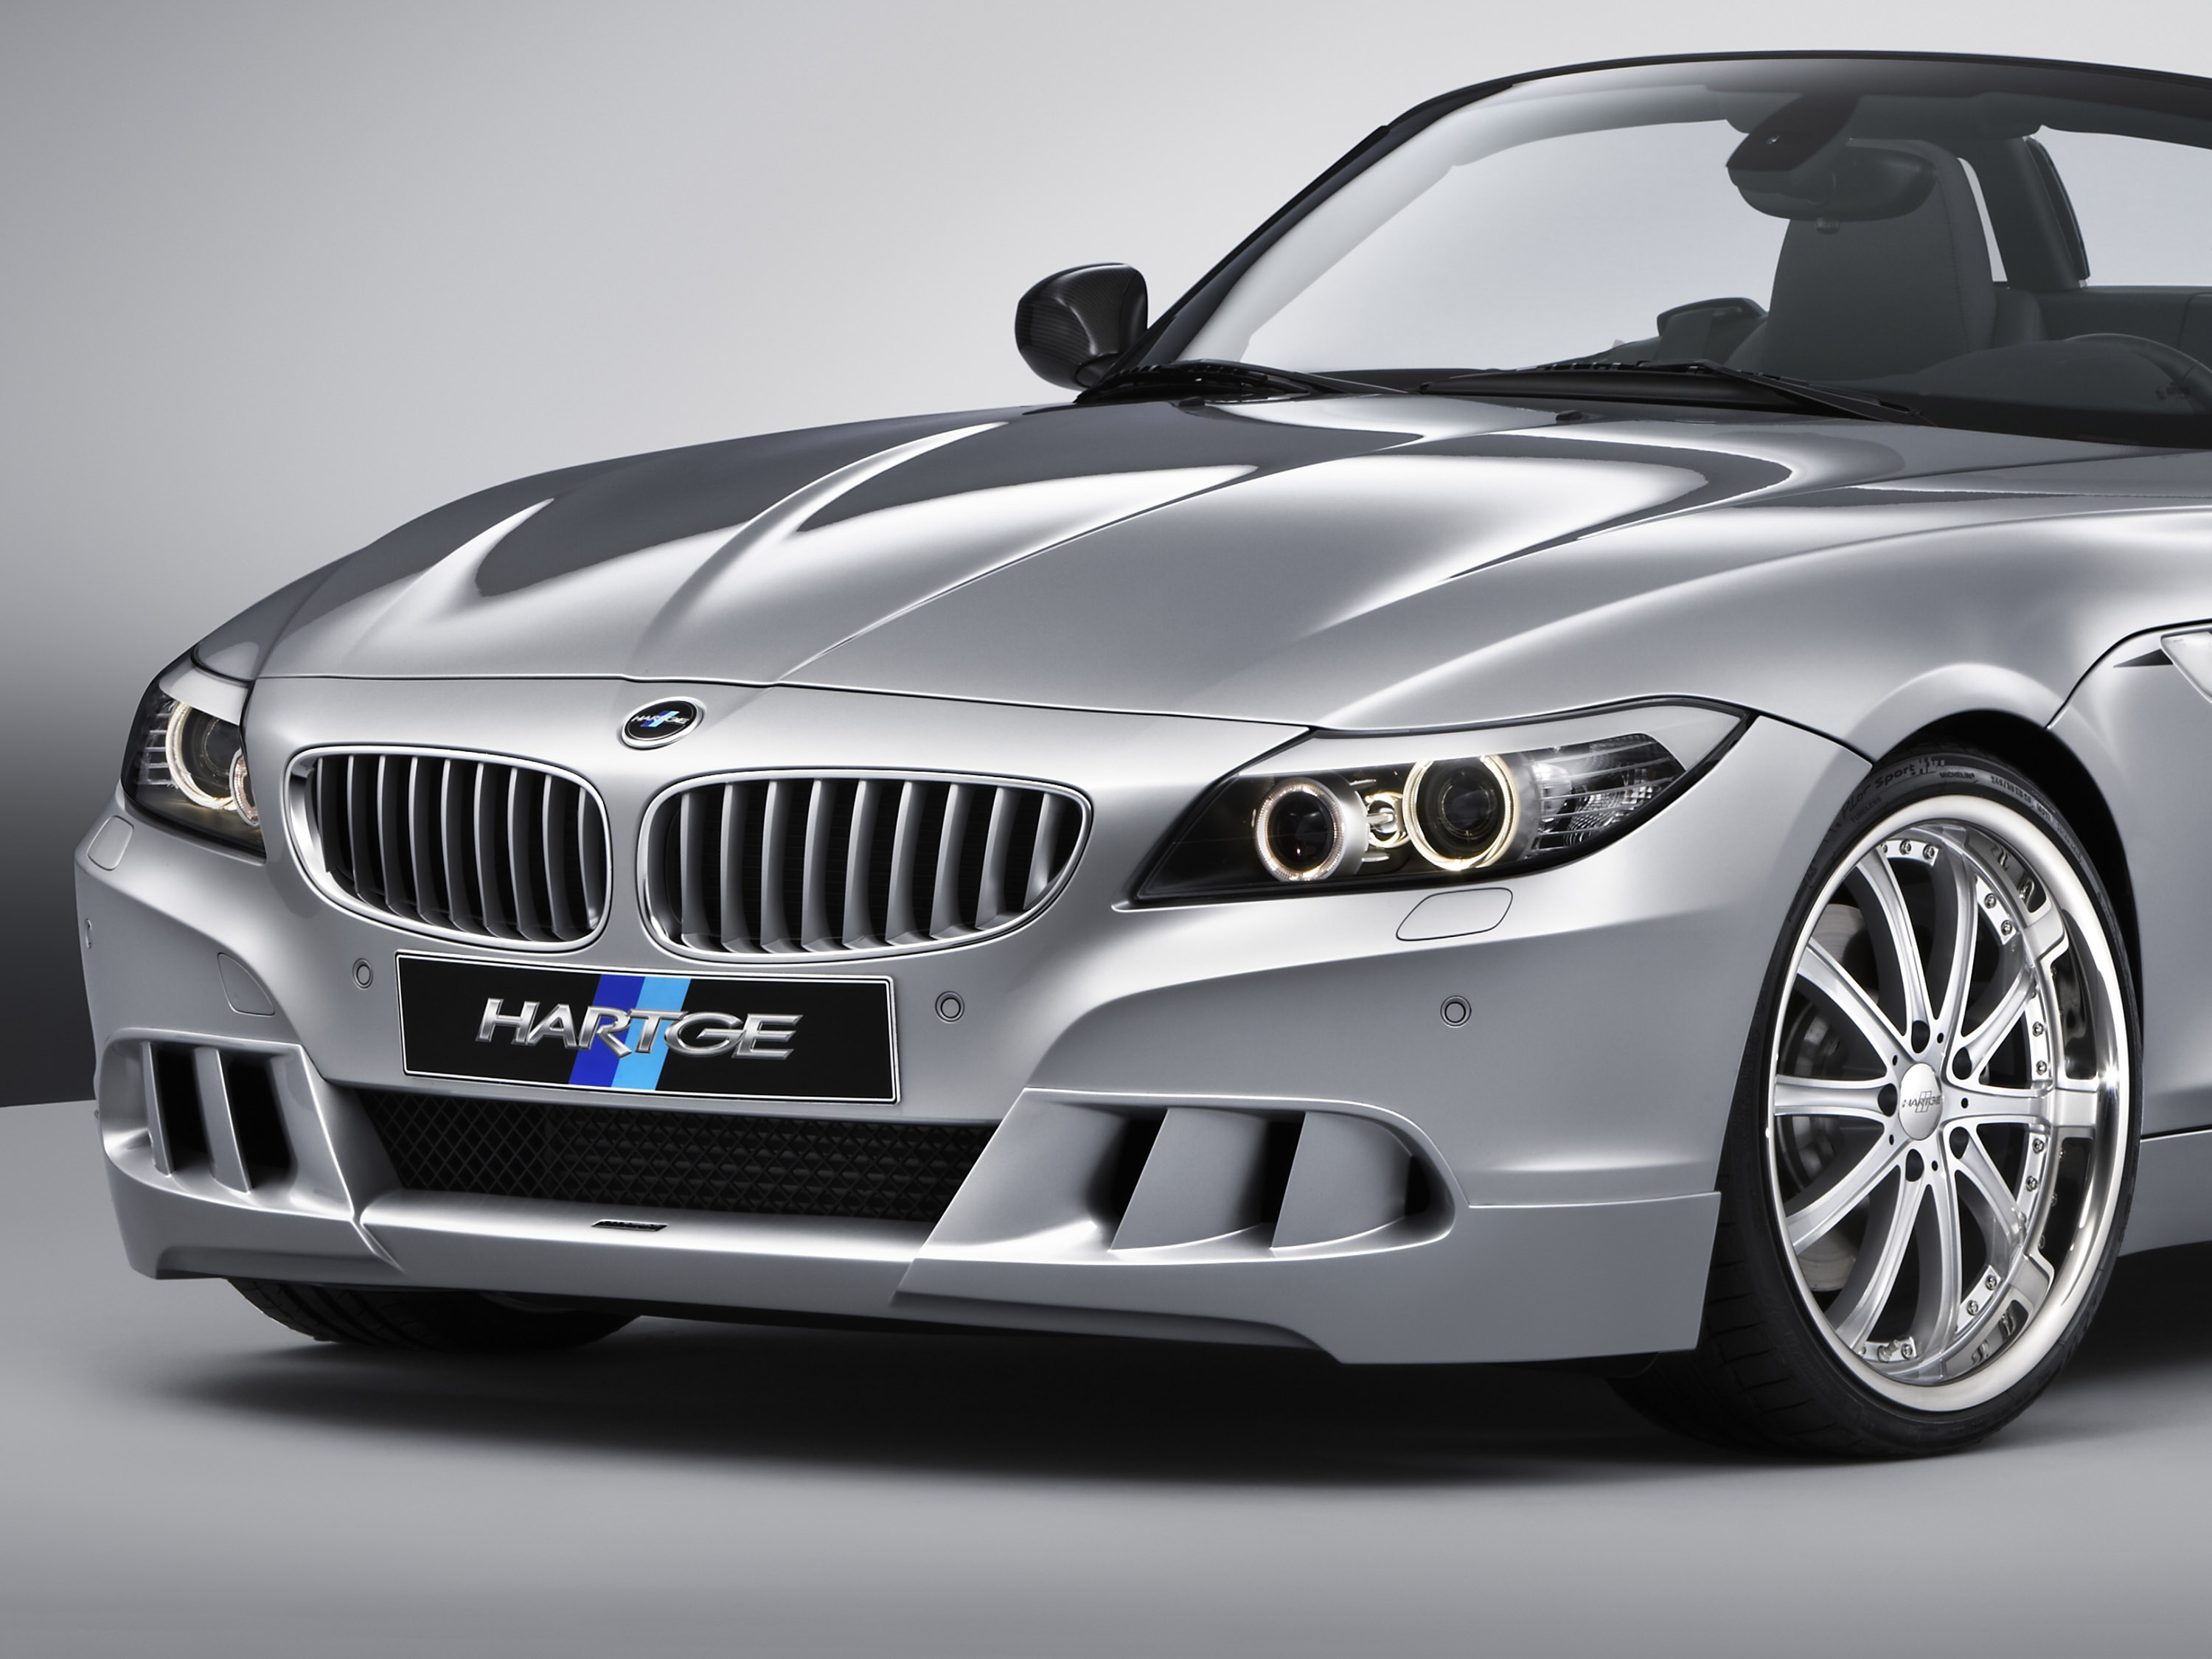 G Power Tuning Kit For The Bmw 6 Cylinder M54 Engine